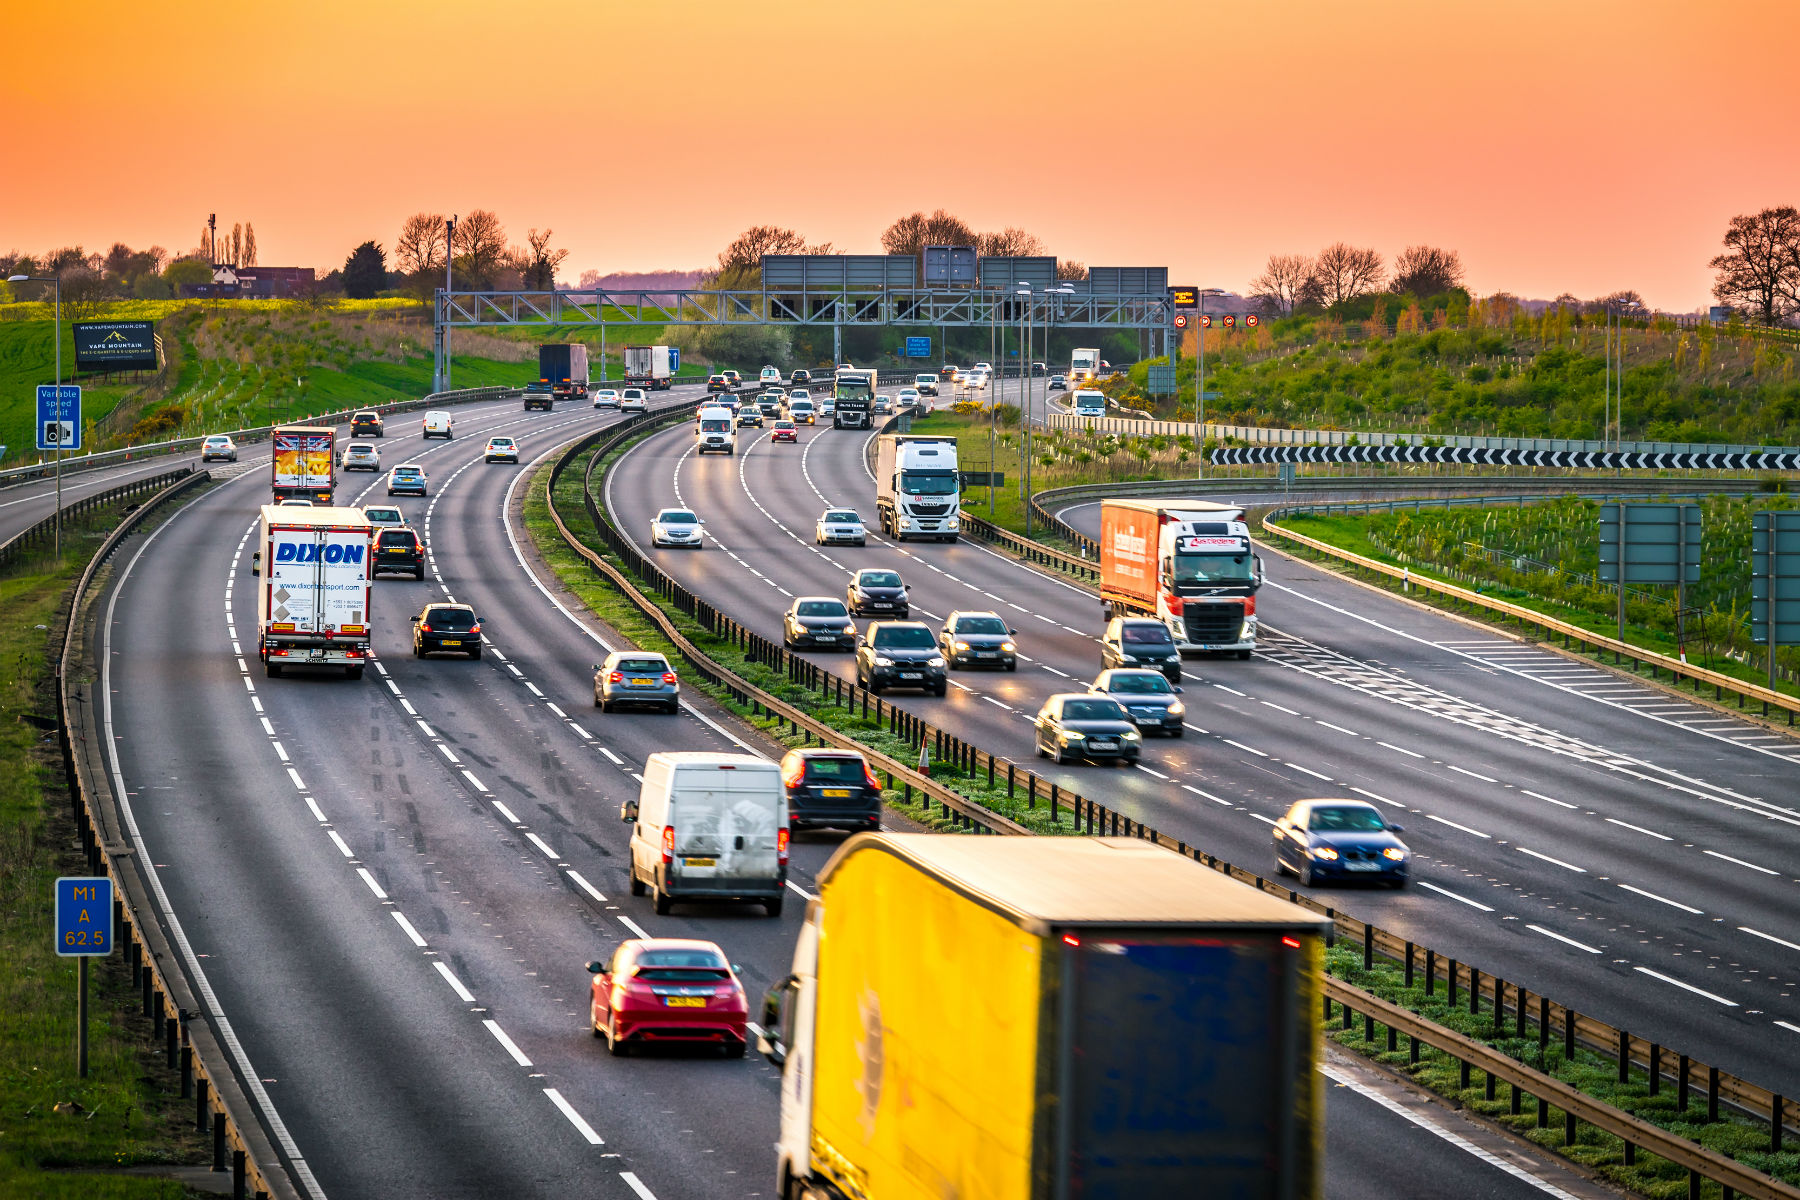 Cruise at 80mph on the motorway? It could be costing you thousands in fuel